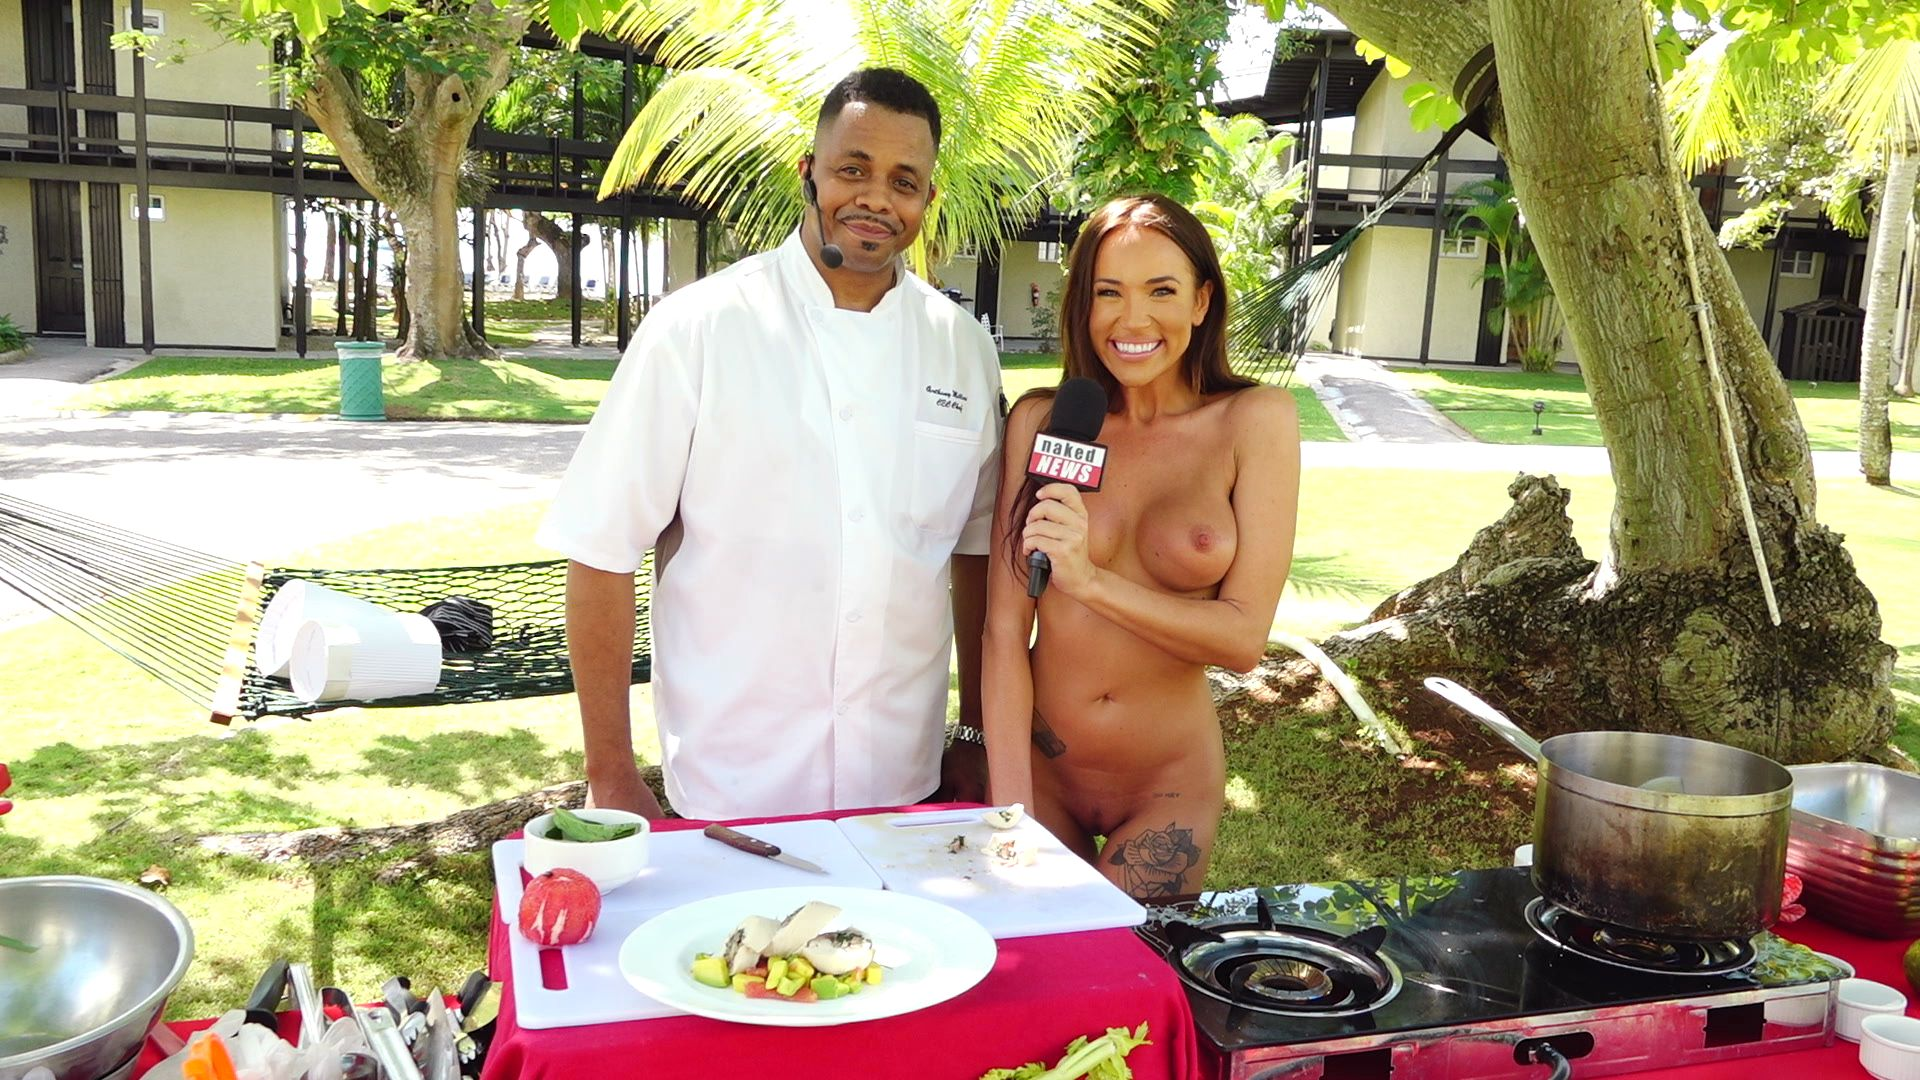 Naked Cooking Show